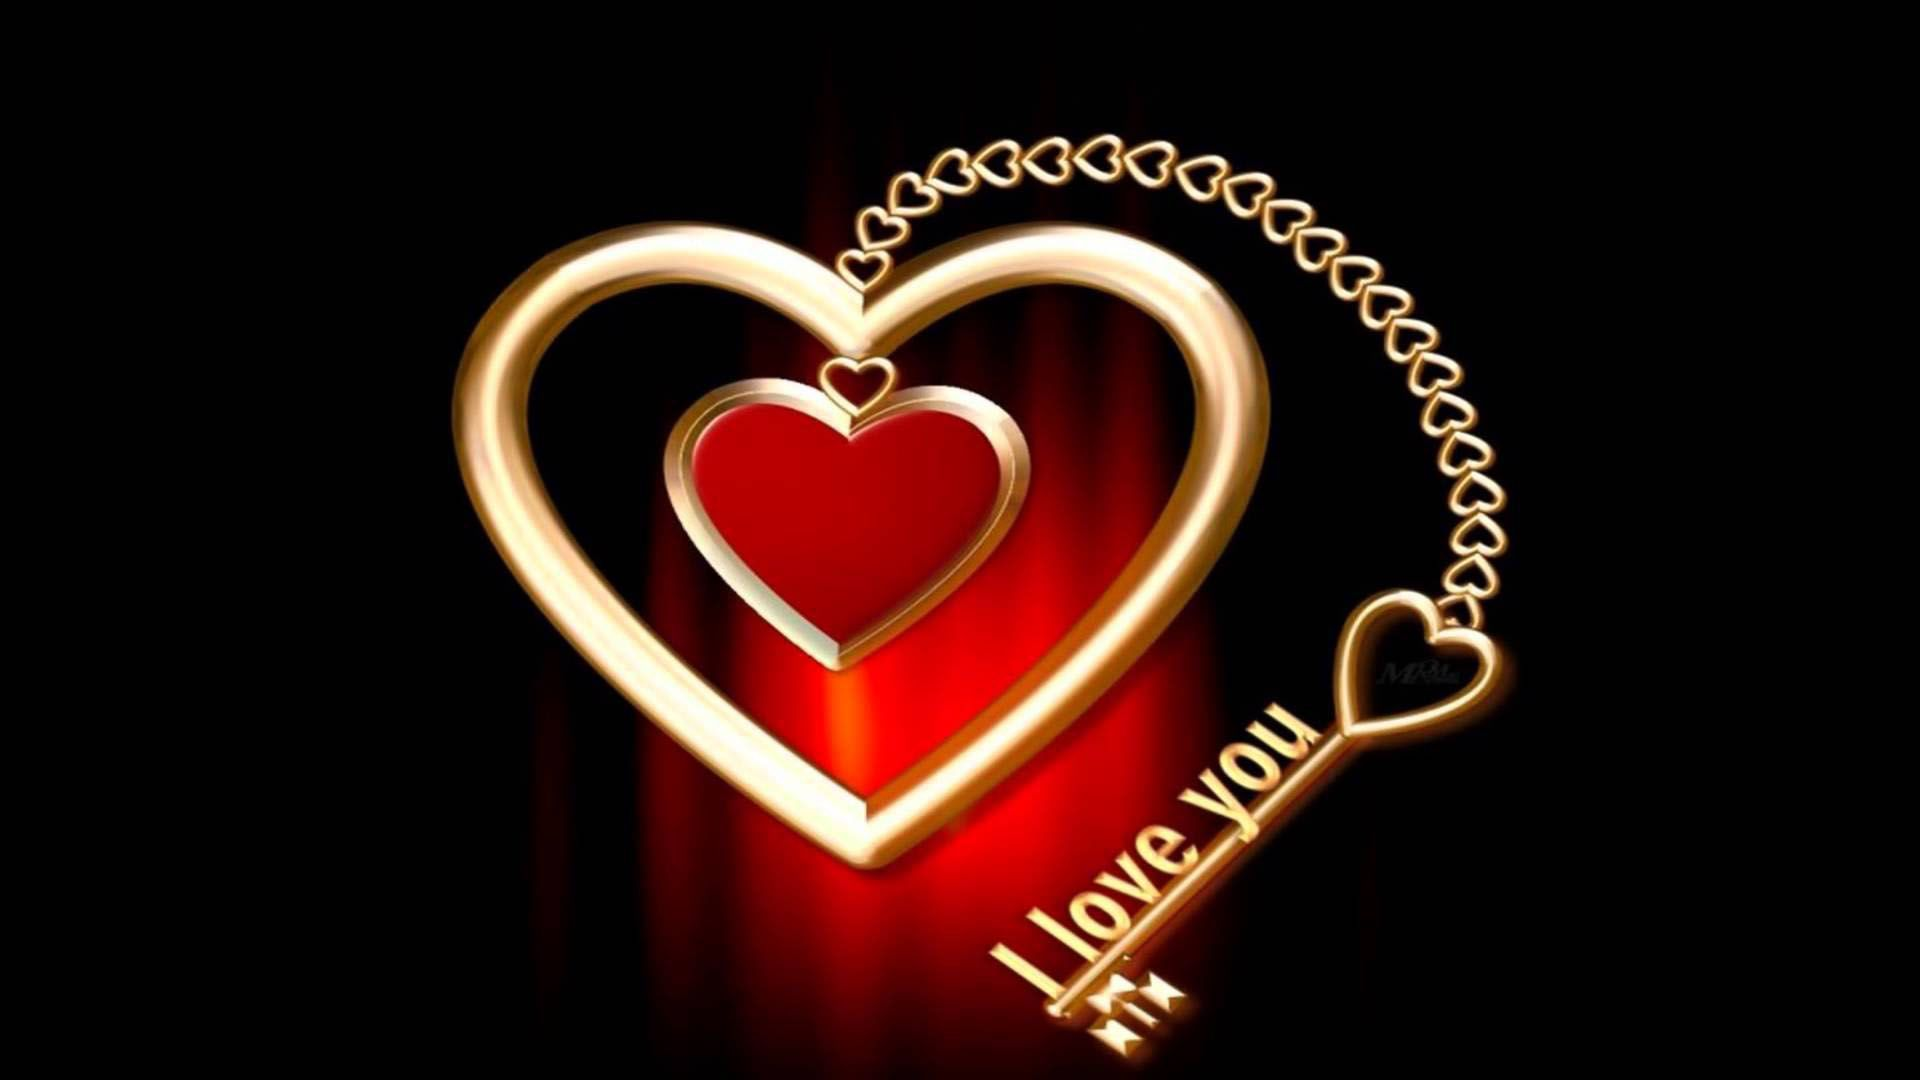 I Love You To Share On Fb Love Your Wallpapers For Desktop